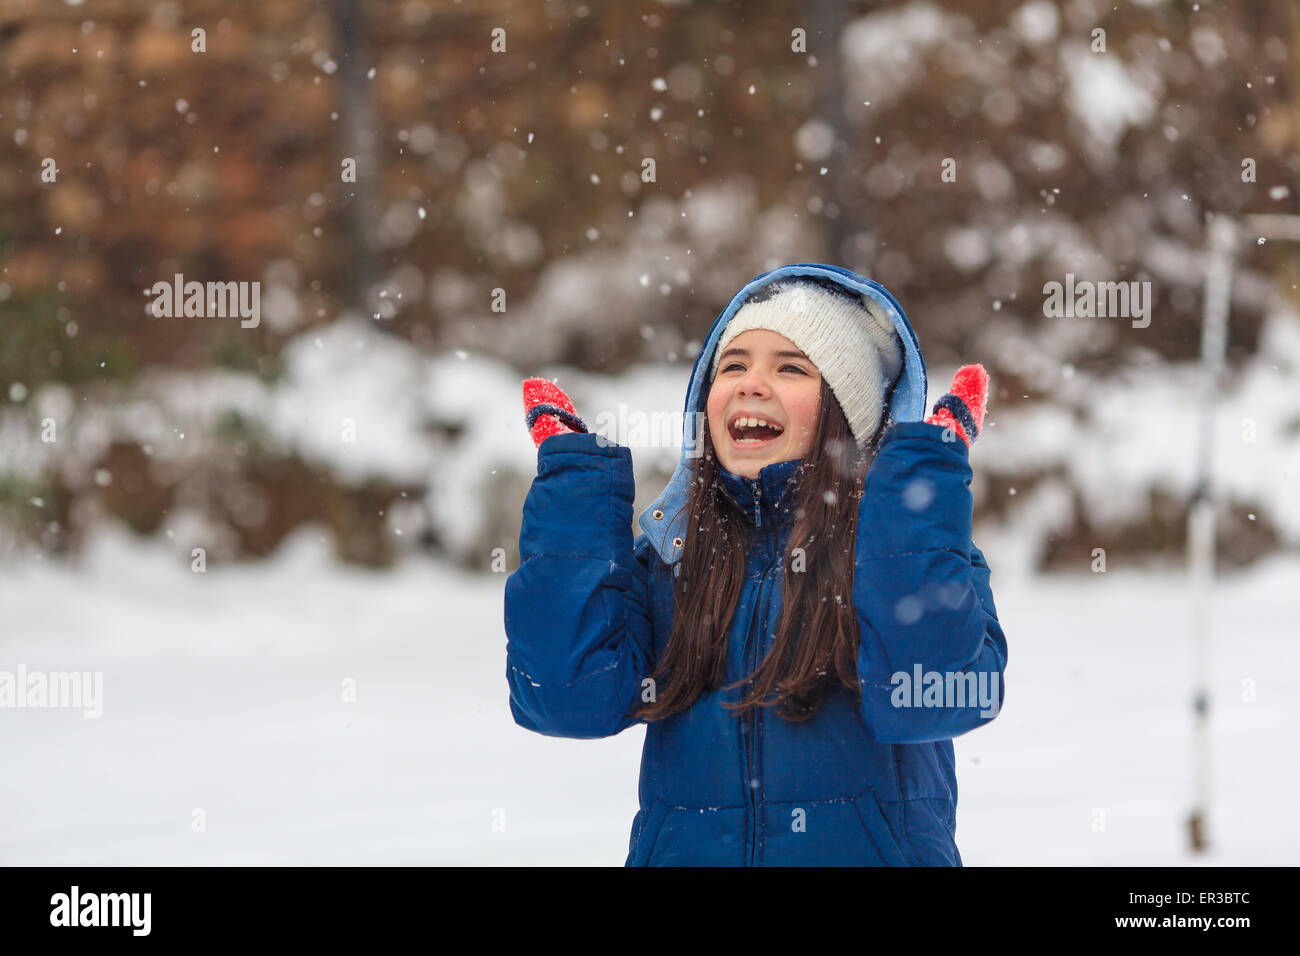 Girl with her hands in the air playing in the snow - Stock Image